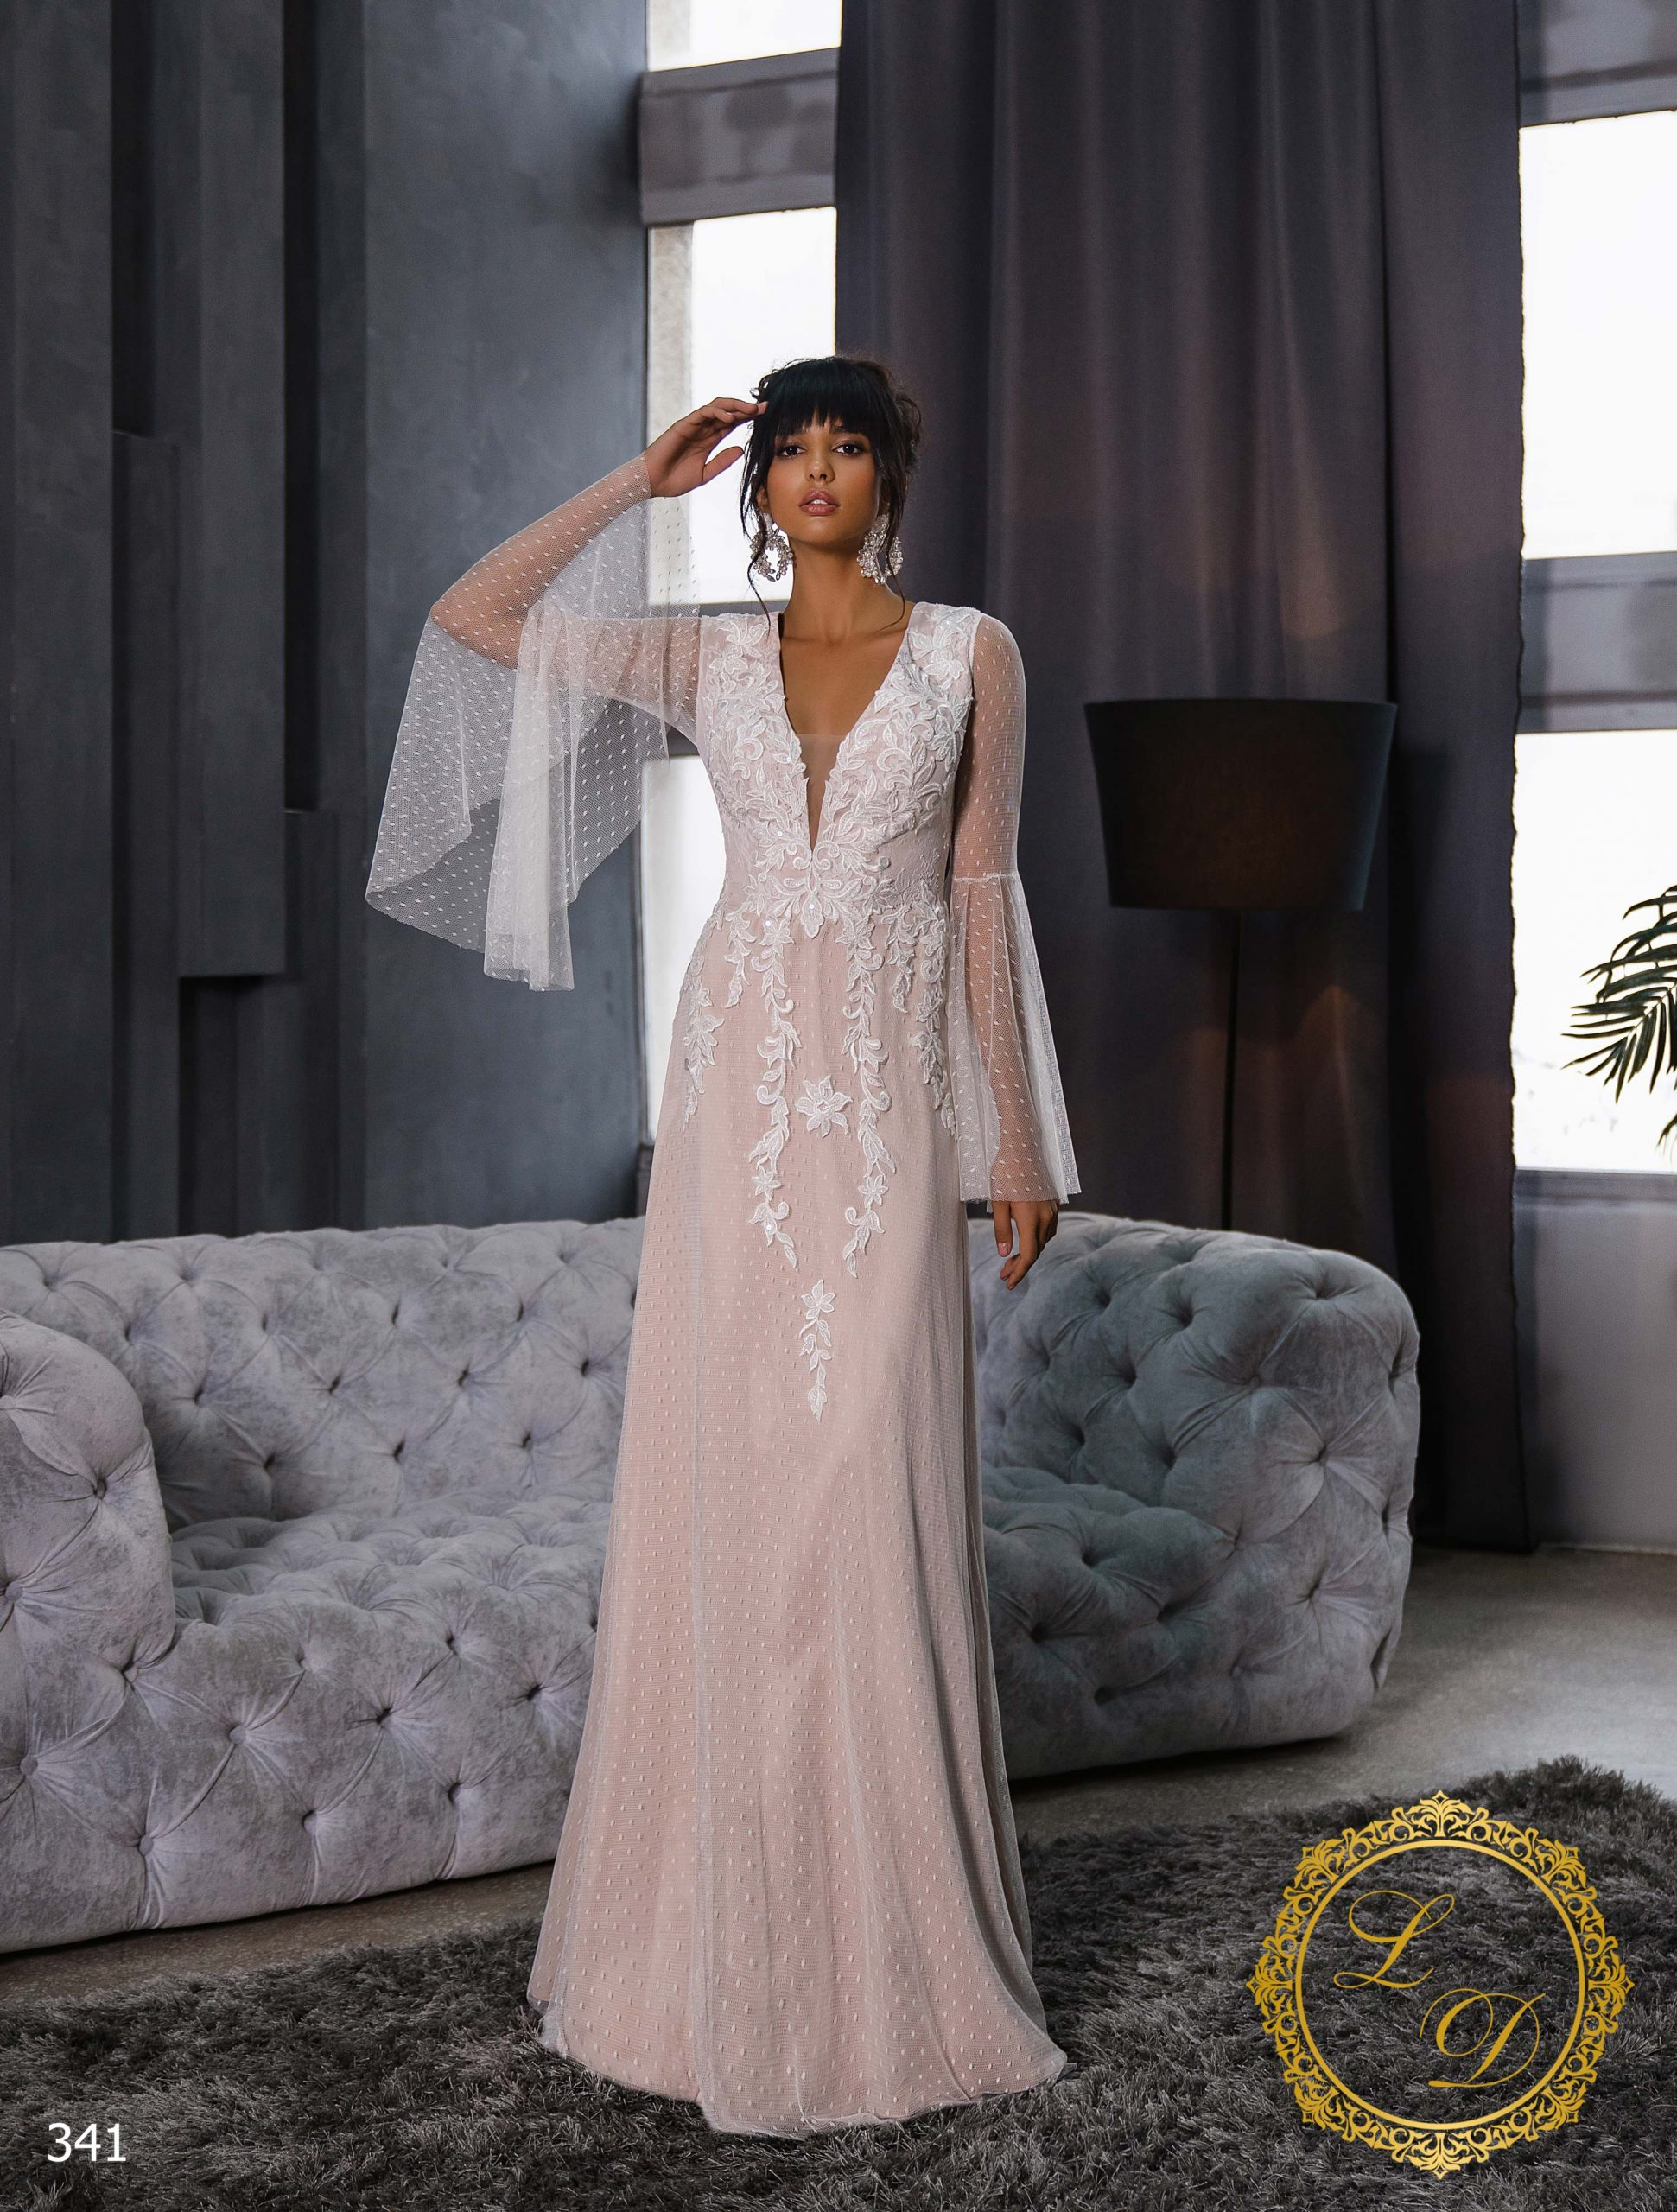 Wedding dress Lady Di 341-1